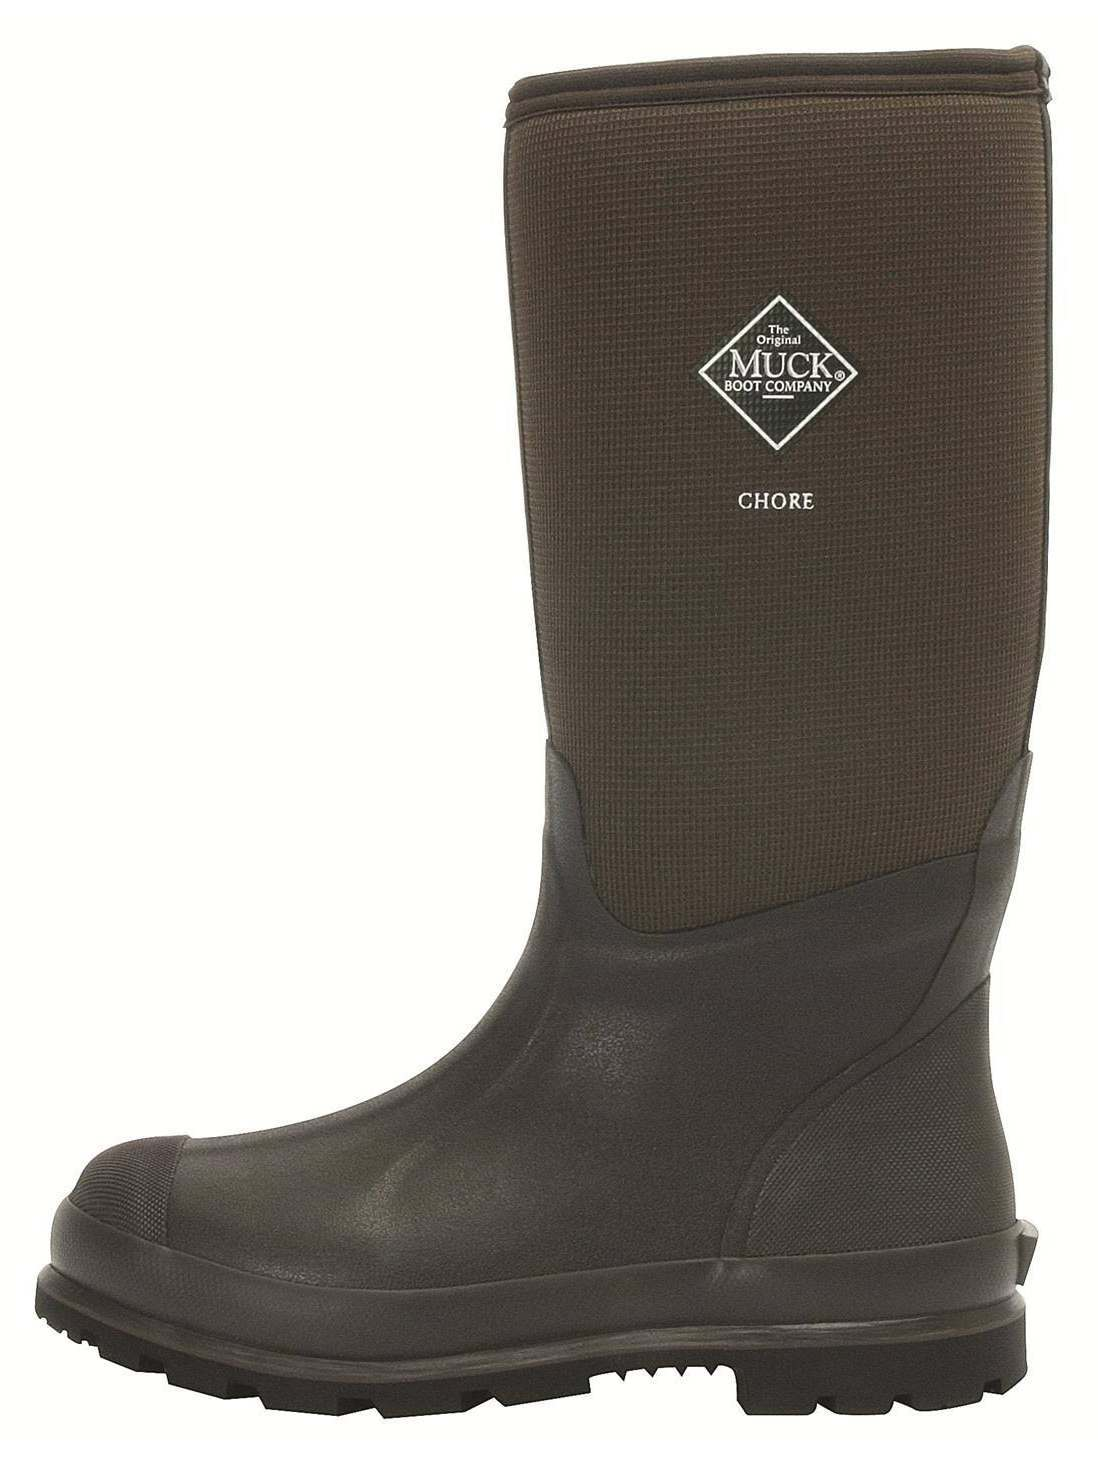 Simple Details About Muck Boot Co Mens 9 Womens 10 Chore Cool Mid CMCT900 12